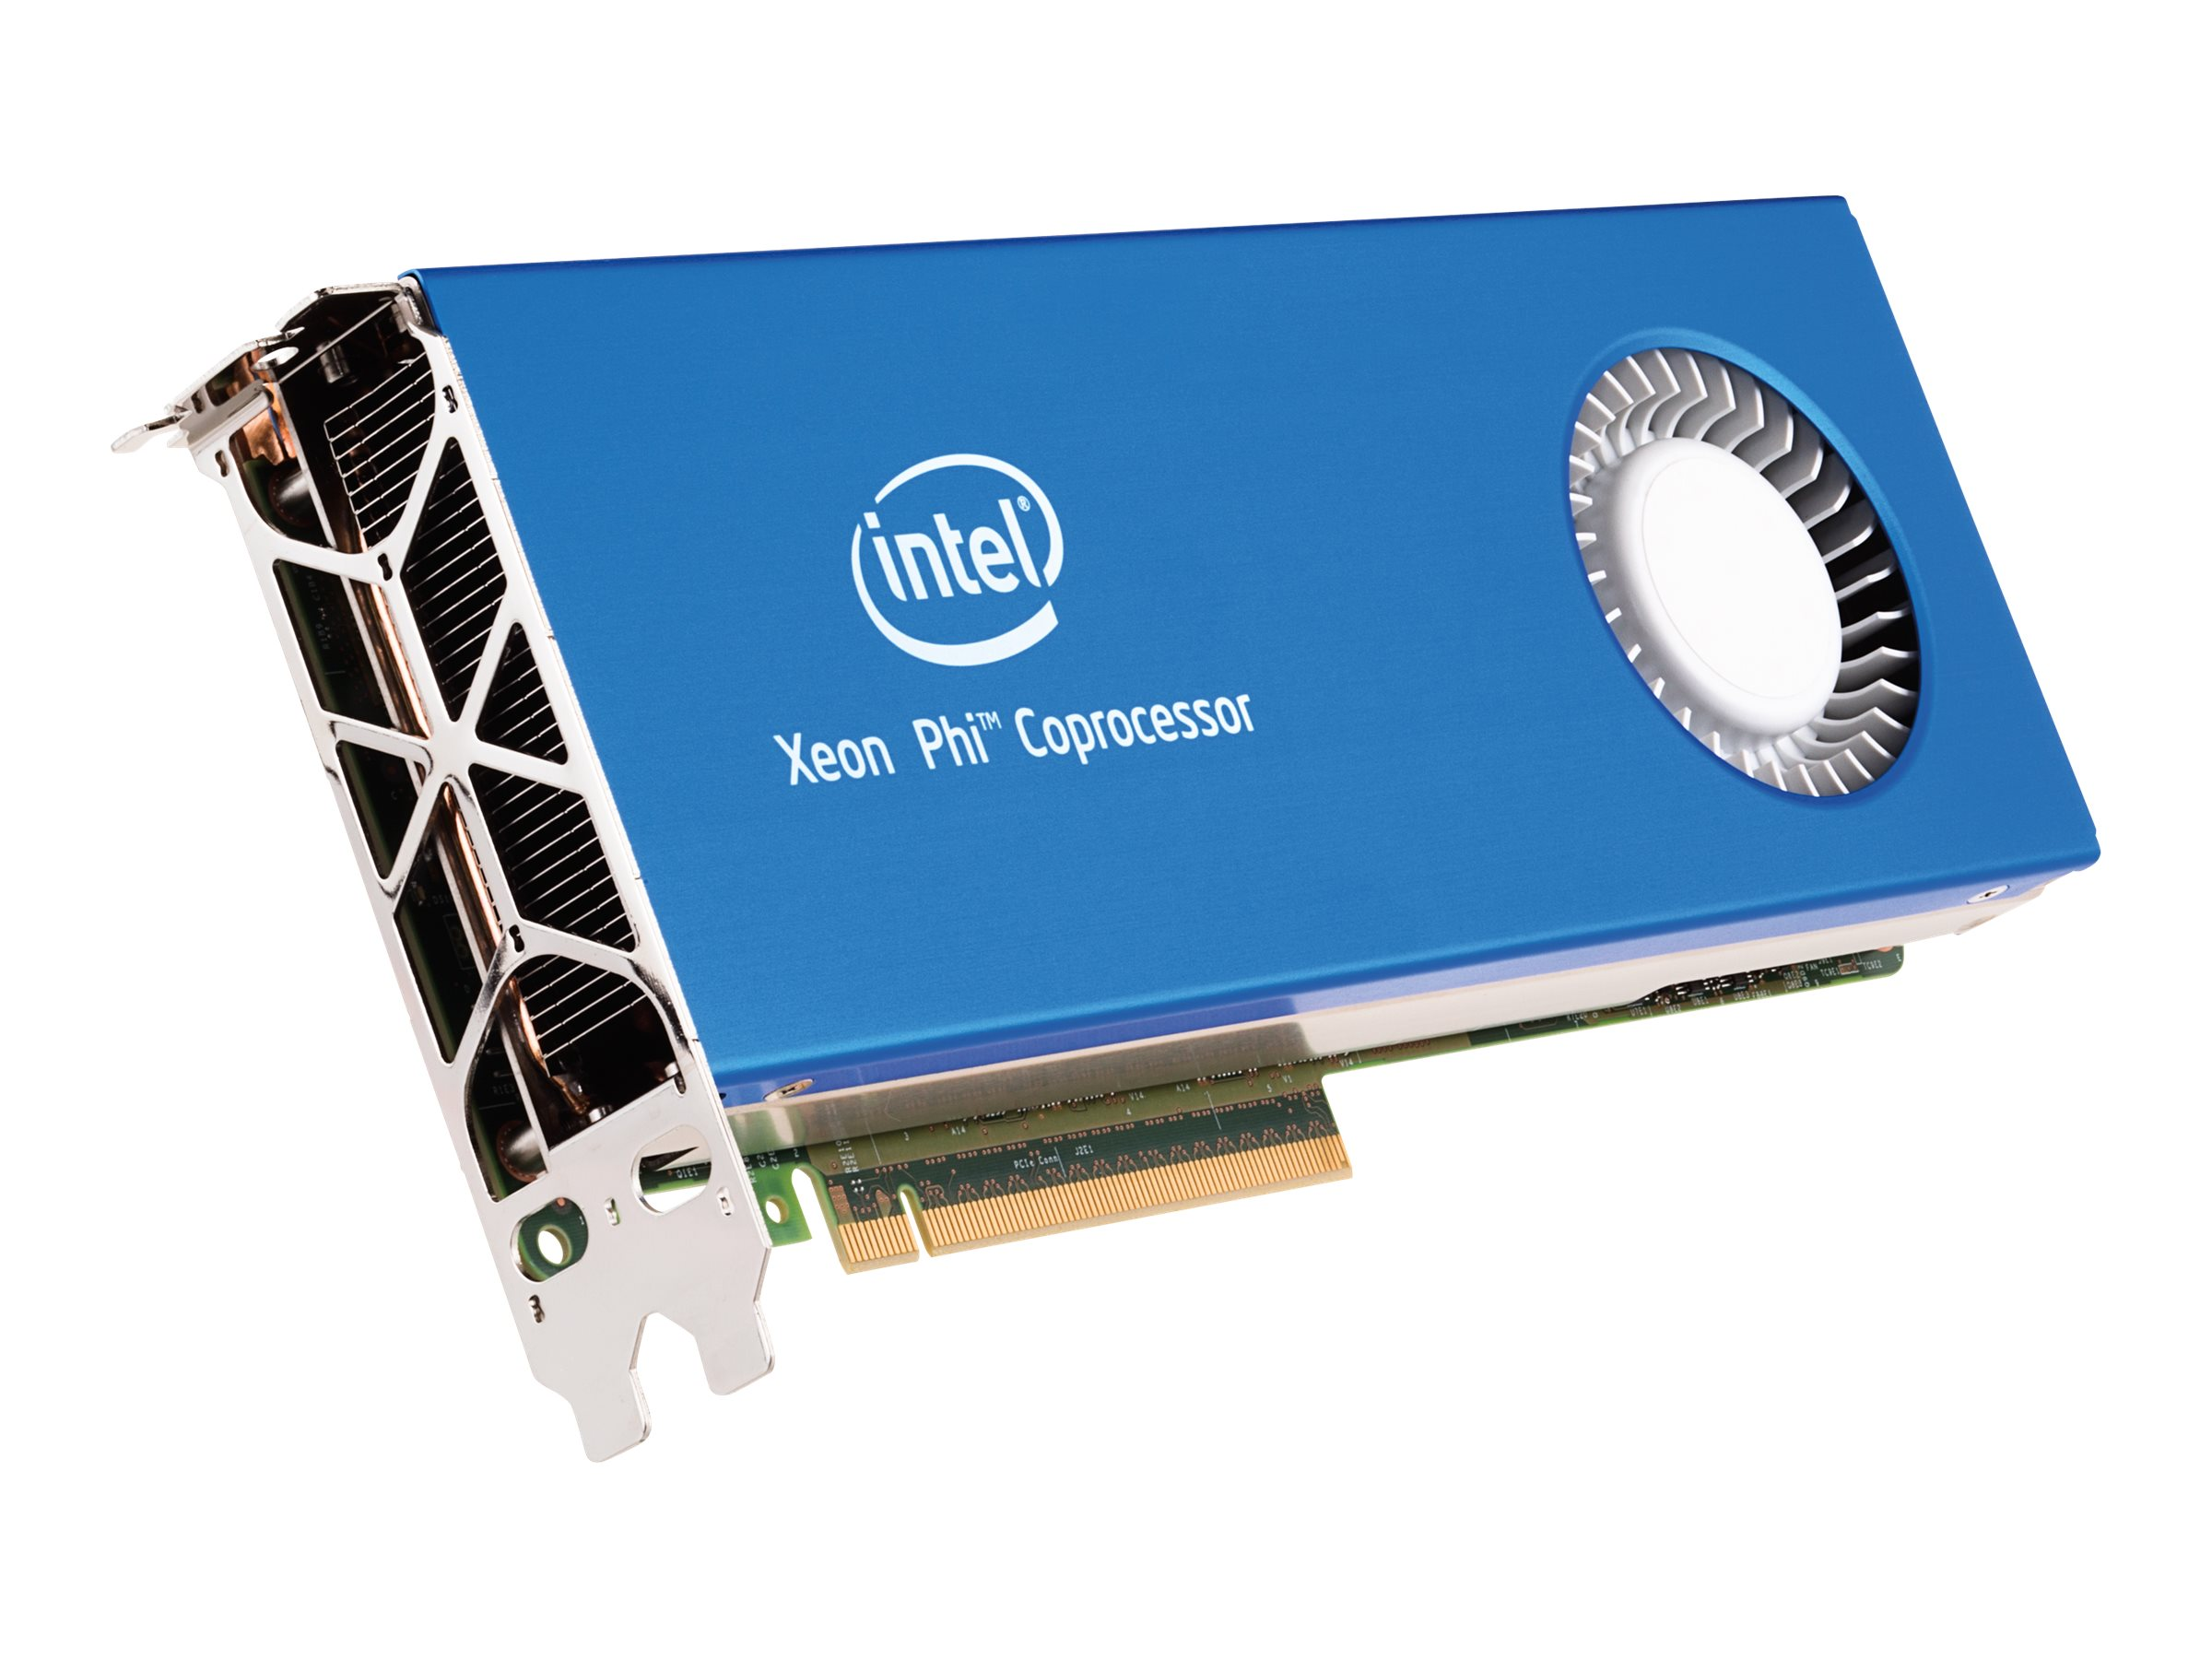 Intel Processor, Xeon Phi Coprocessor 61C 7120X 1.238GHz 30.5MB 300W, SC7120X, 16327438, Processor Upgrades